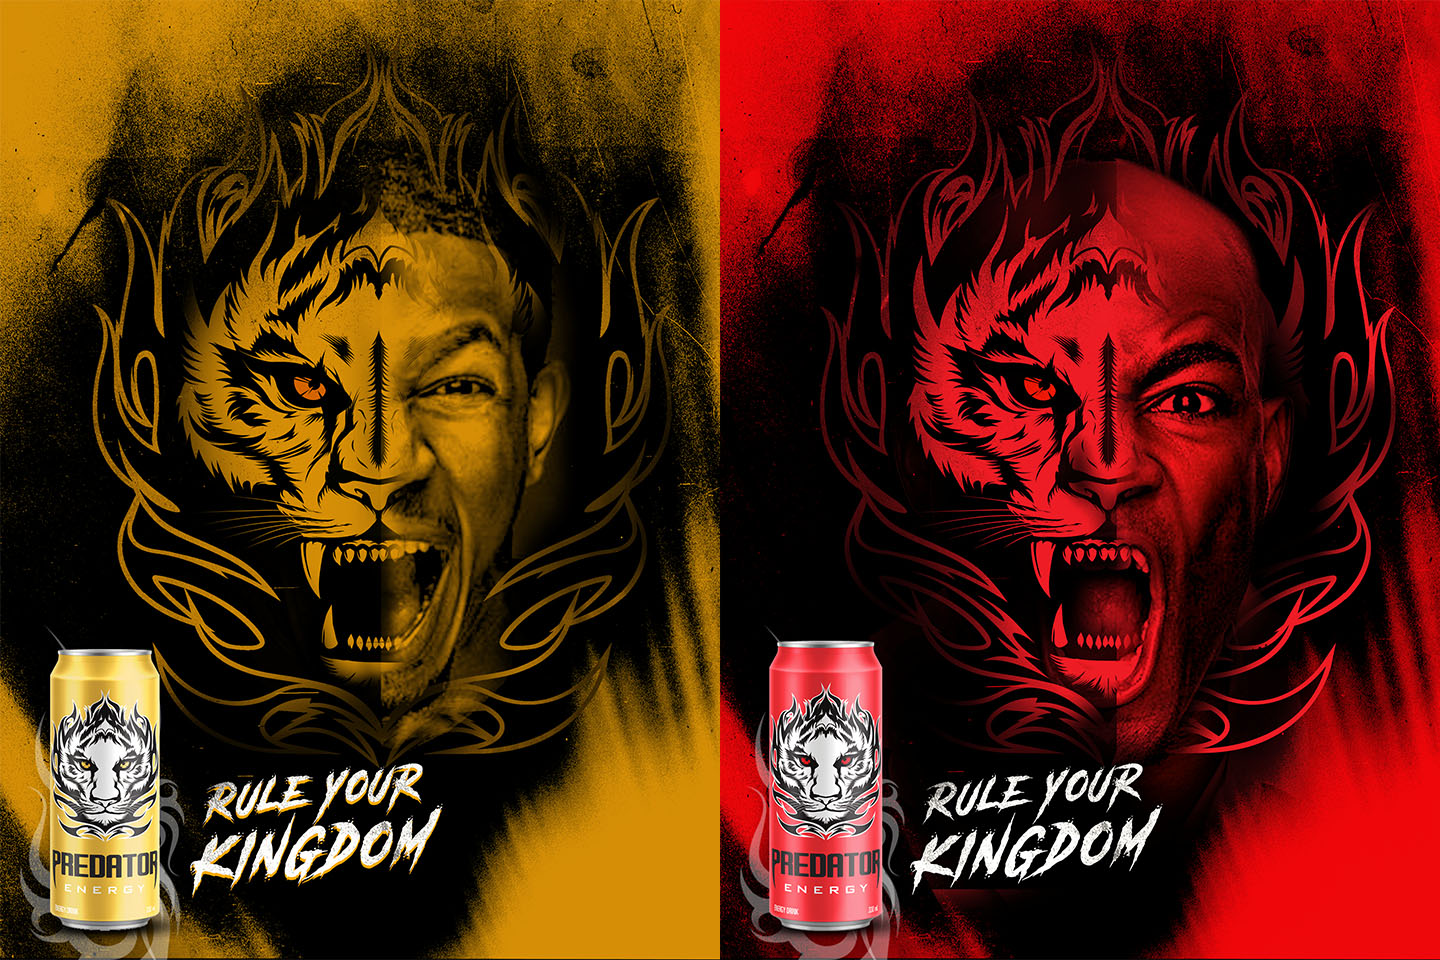 Predator Energy Drink campaign big idea for brand launch